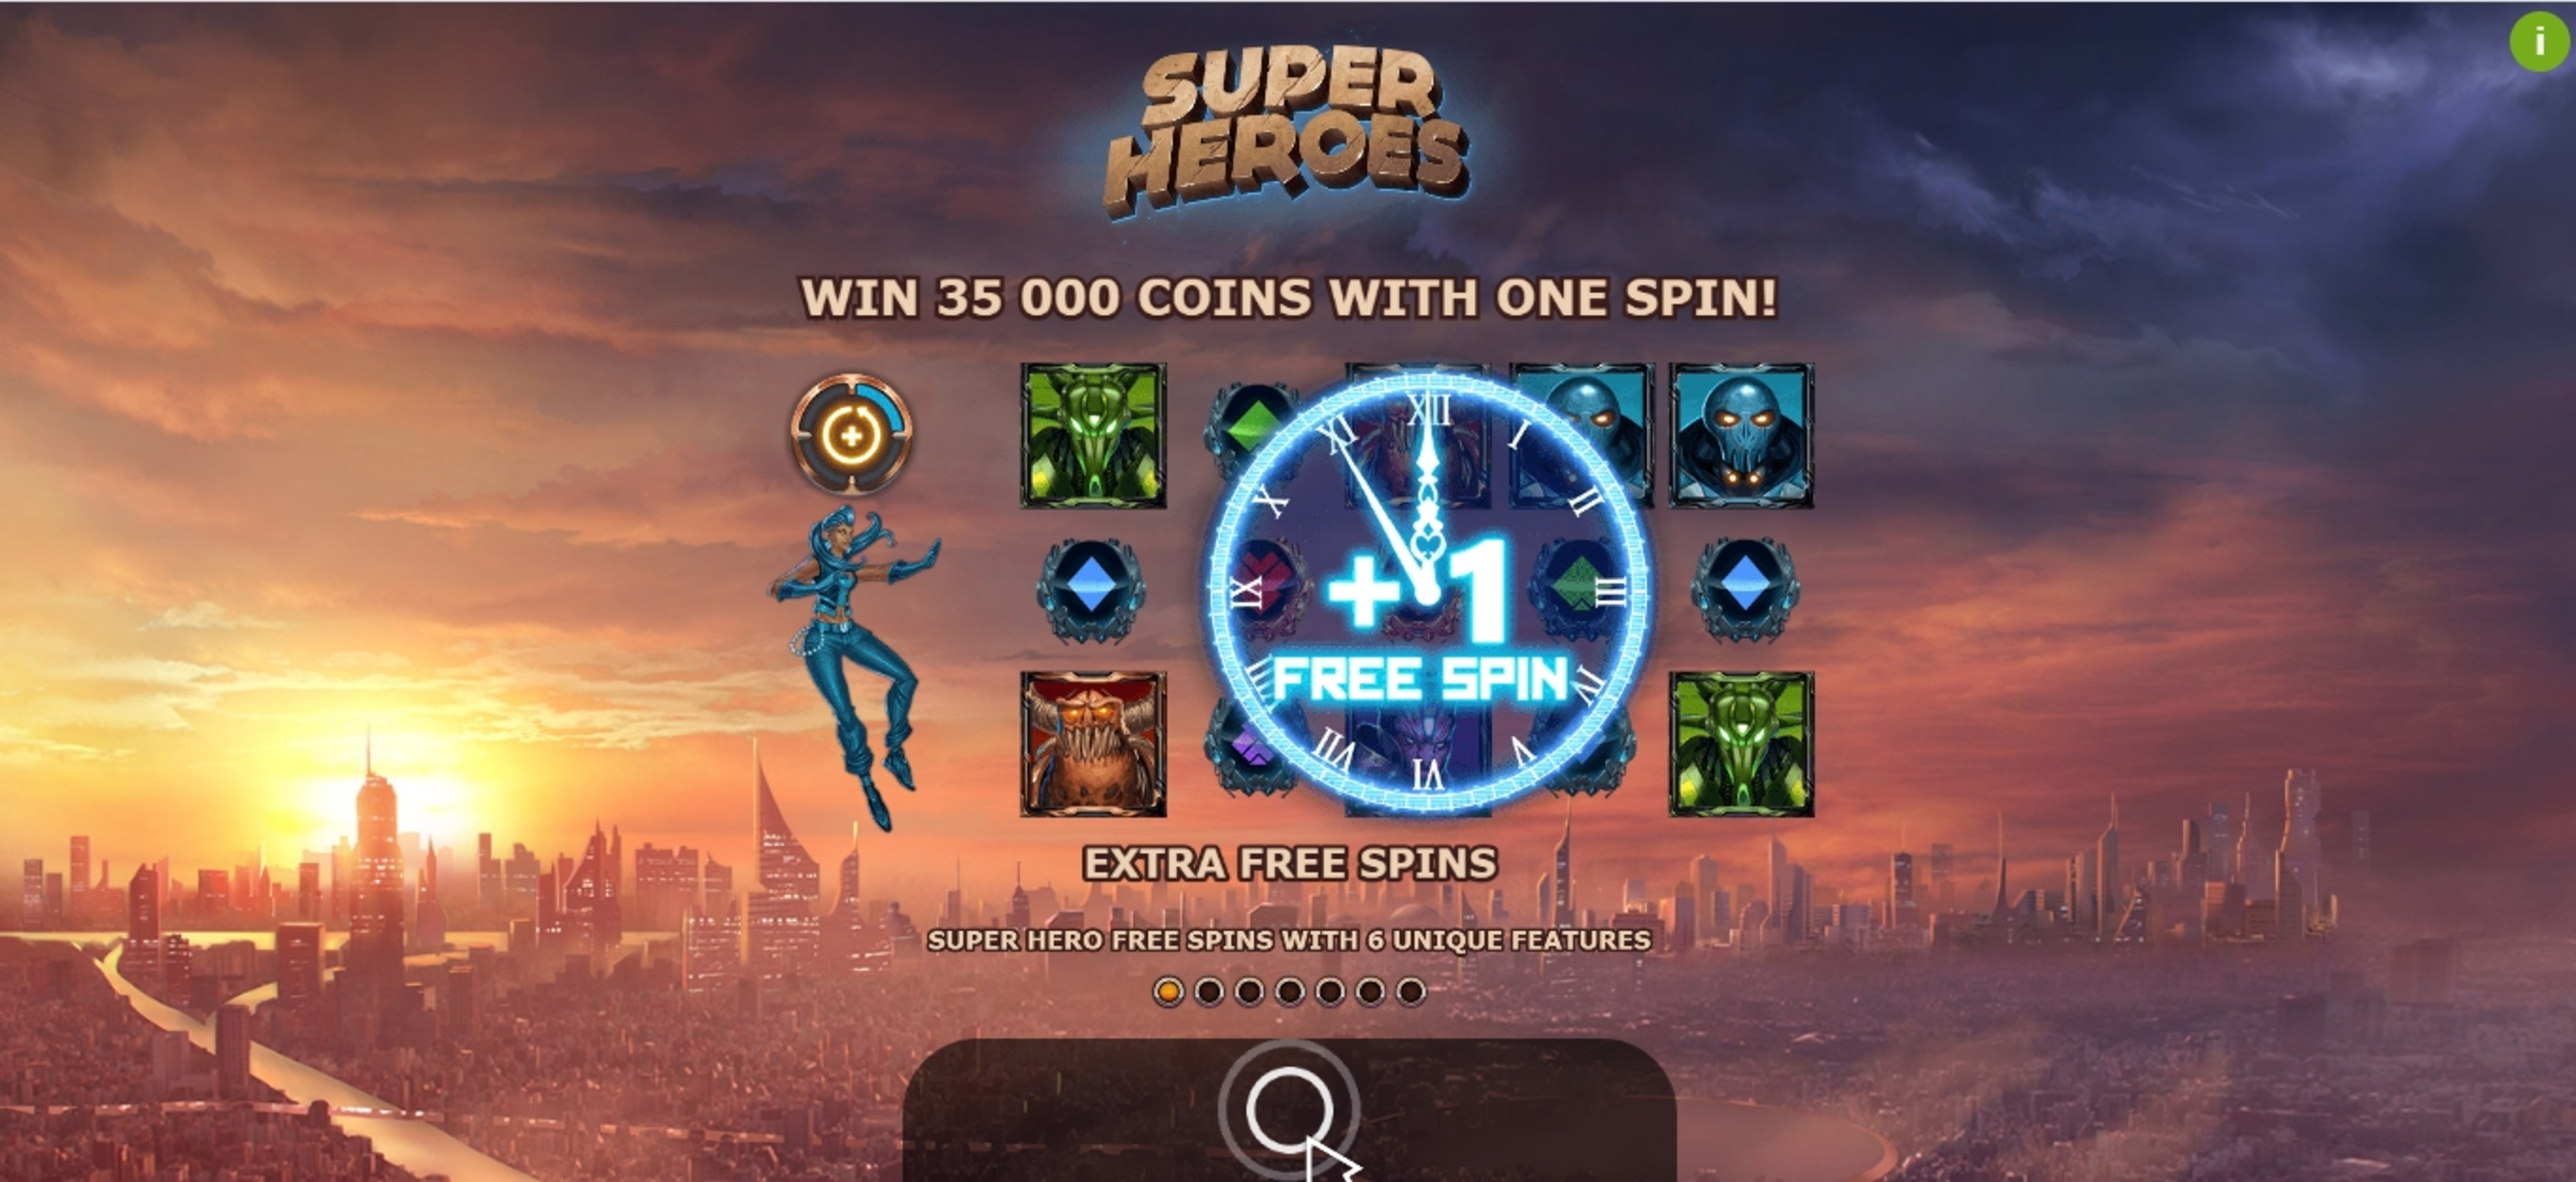 Play Super Heroes Free Casino Slot Game by Yggdrasil